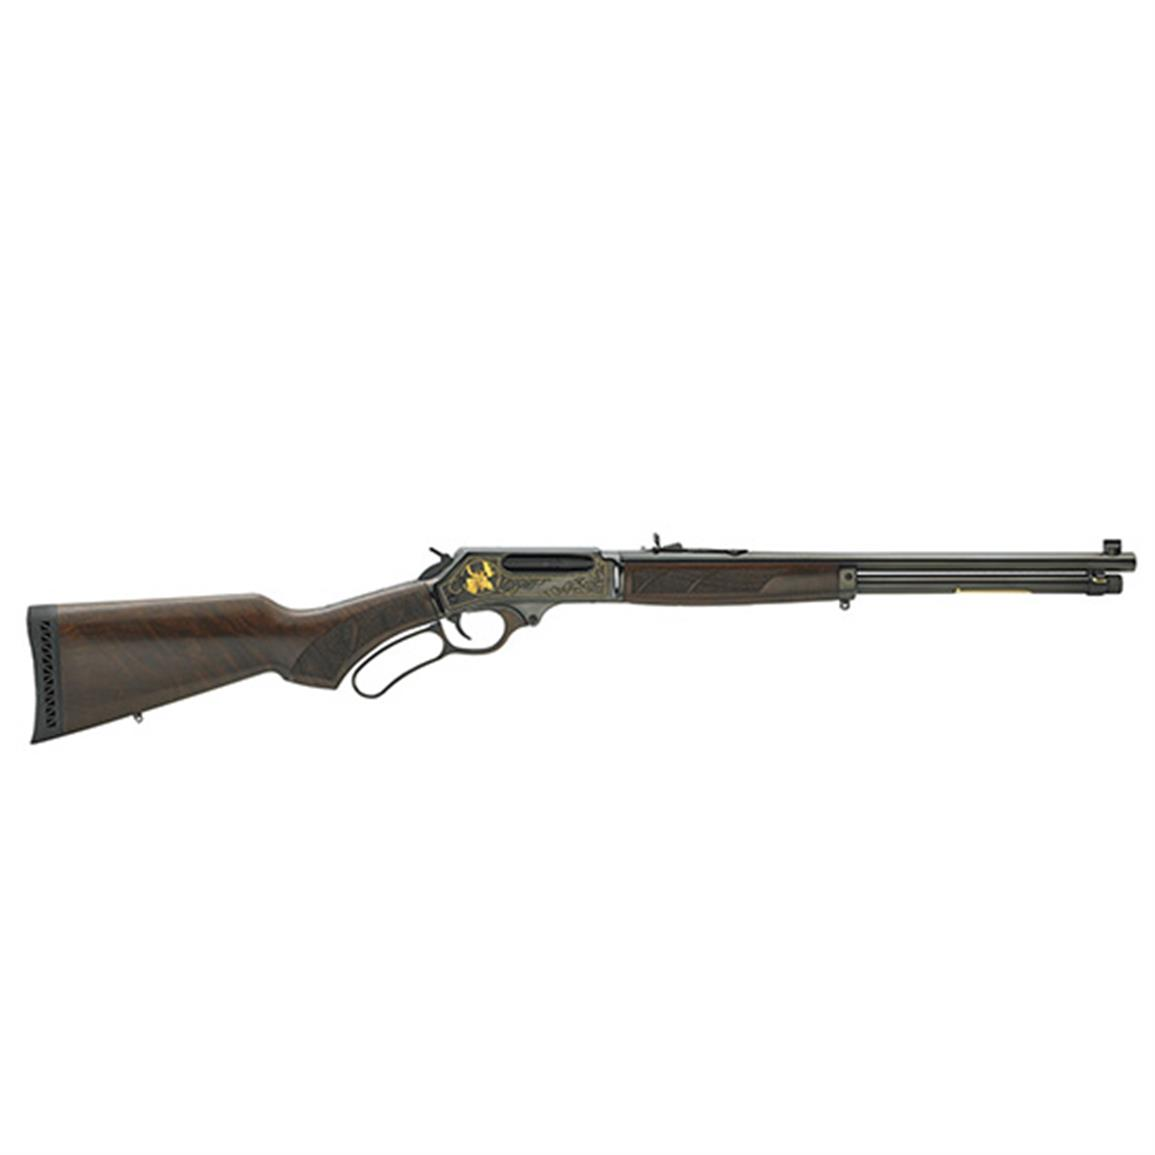 "Henry 45-70 Steel Wildlife Edition, Lever Action, .45-70 Government, 18"" Barrel, 4 Rounds"